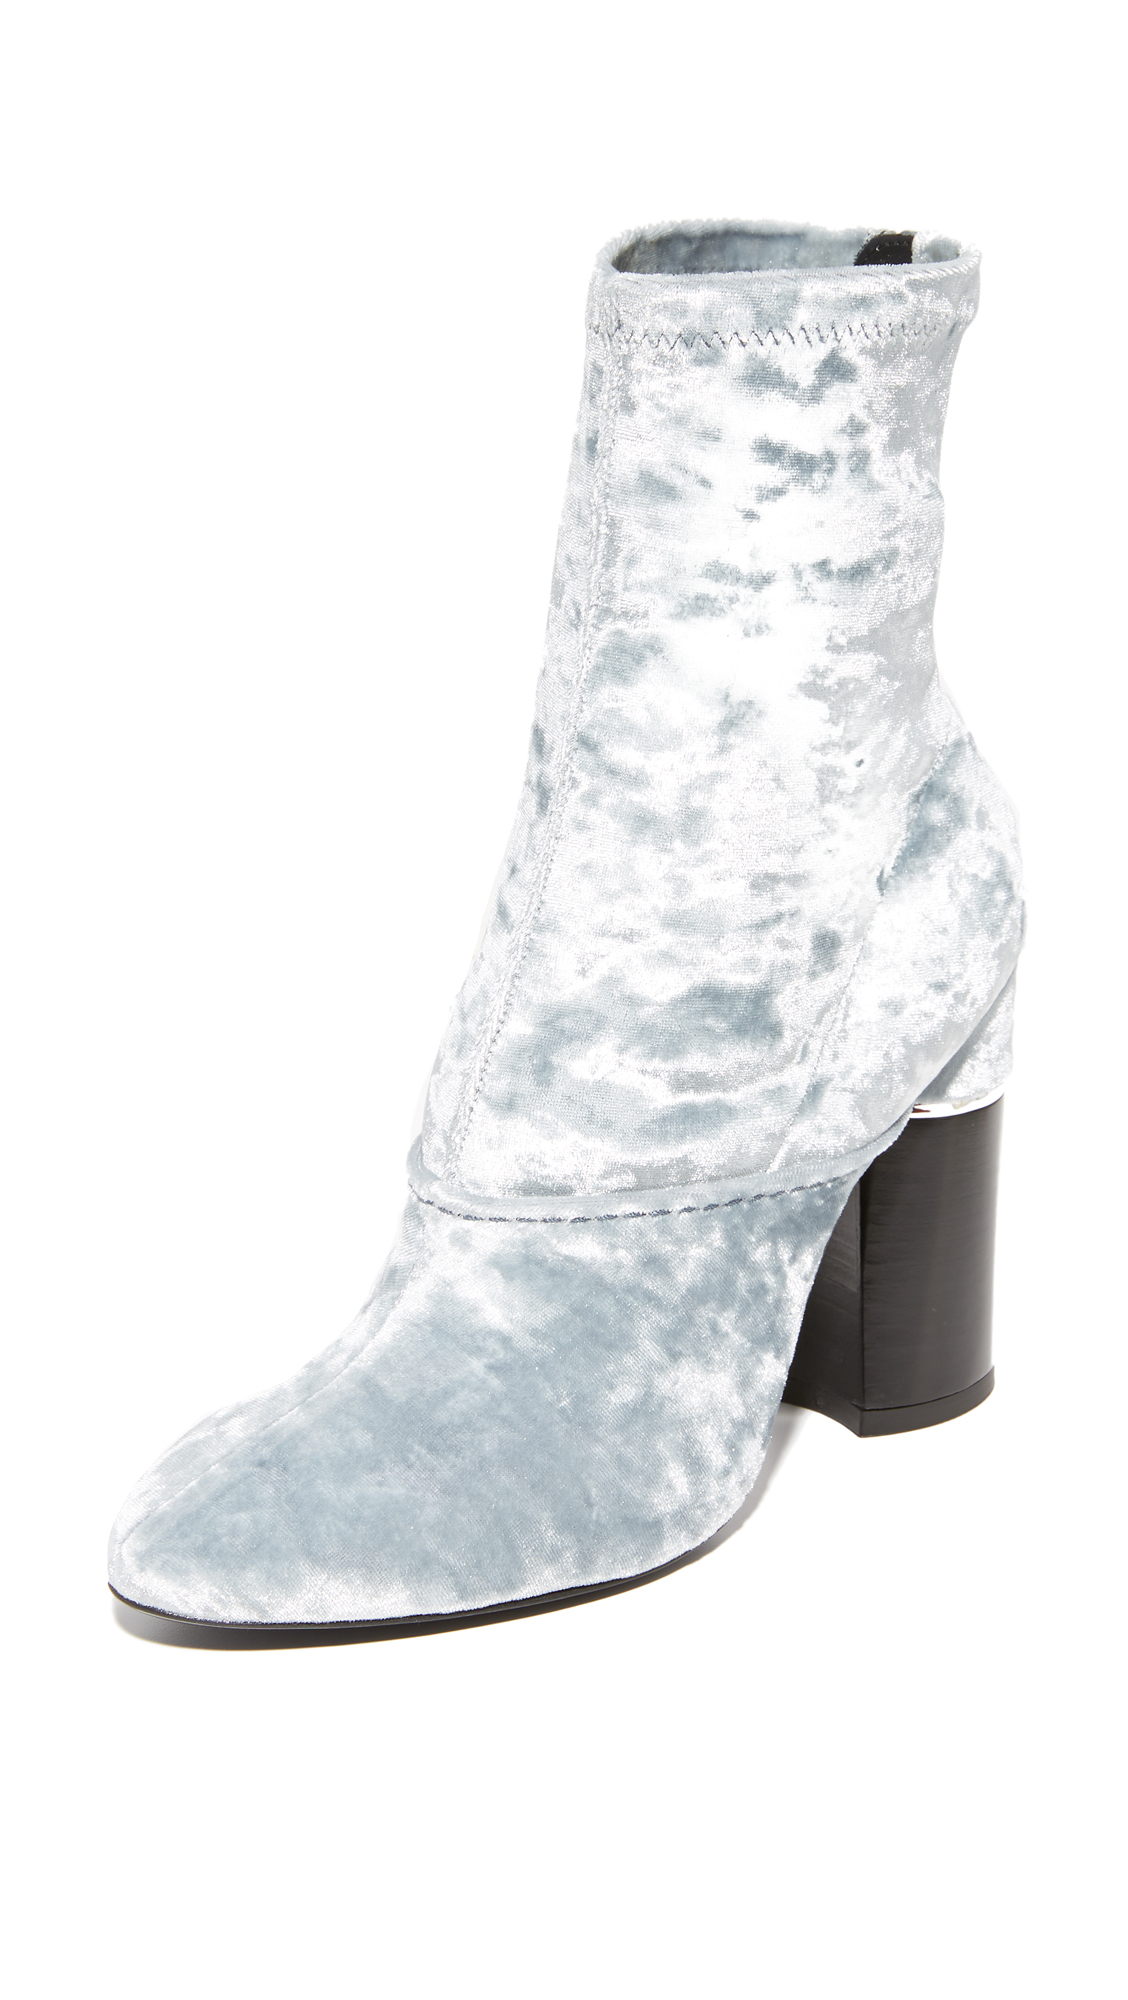 3.1 Phillip Lim Kyoto Stretch Ankle Booties - Cloud